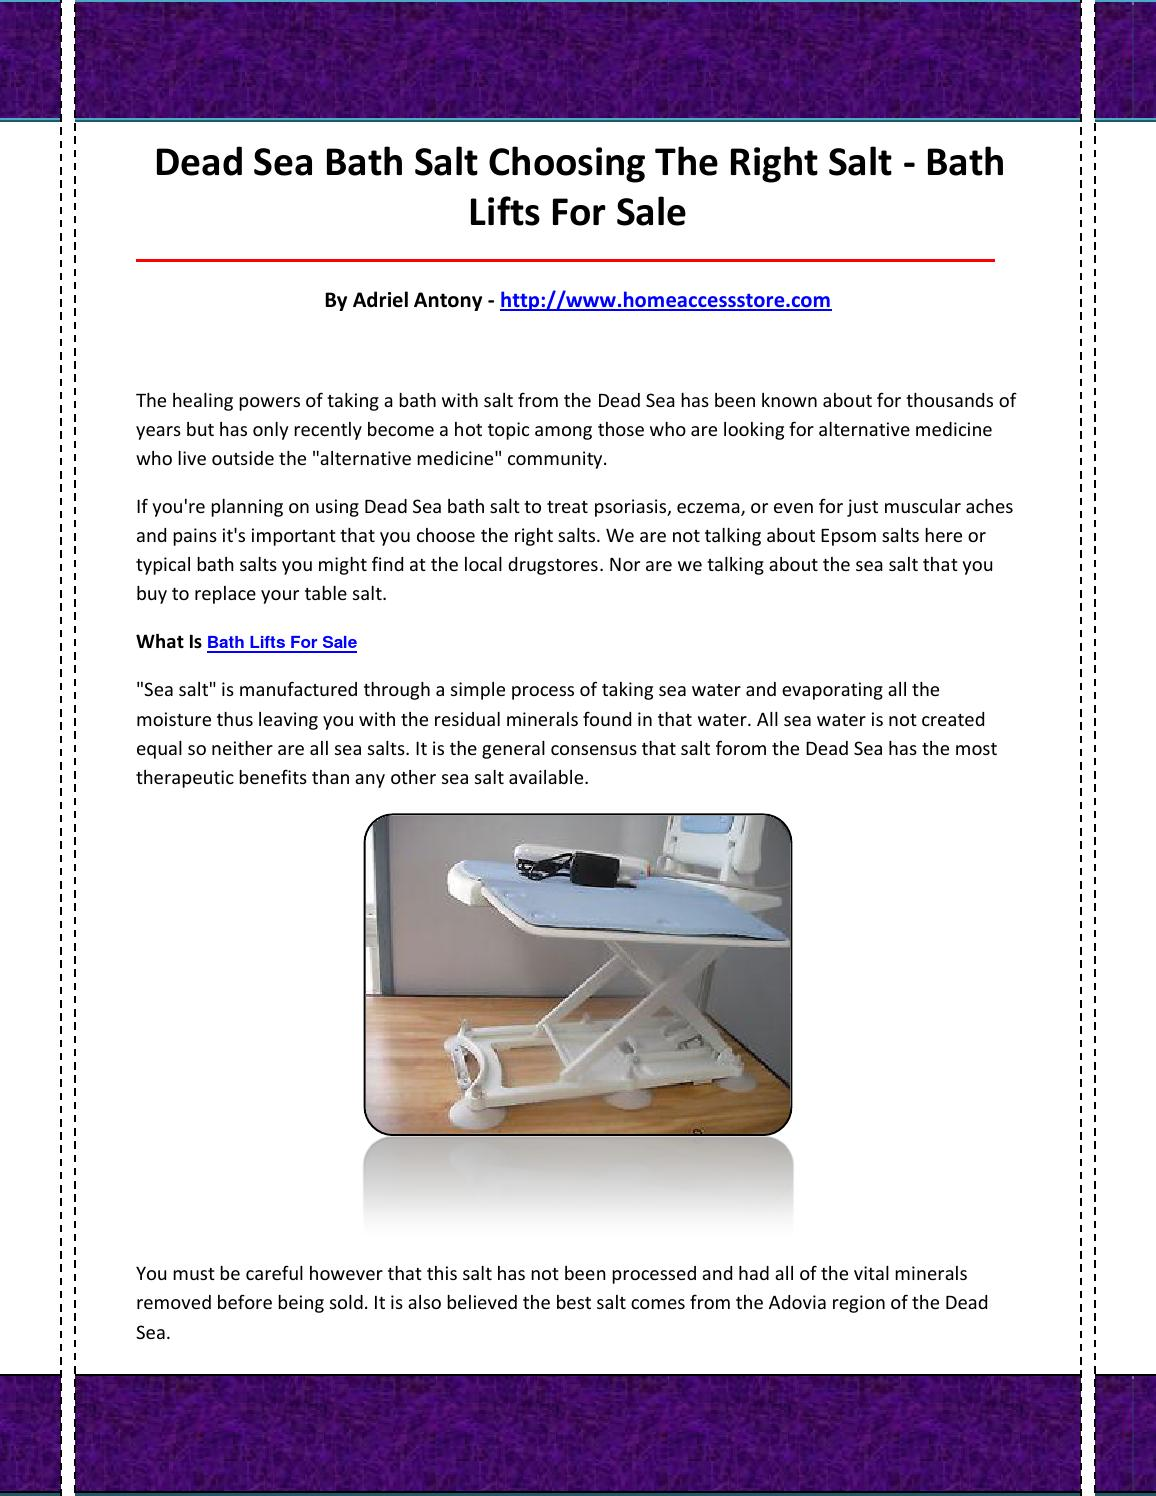 Bath lifts for sale by bathliftsforsale67 - issuu